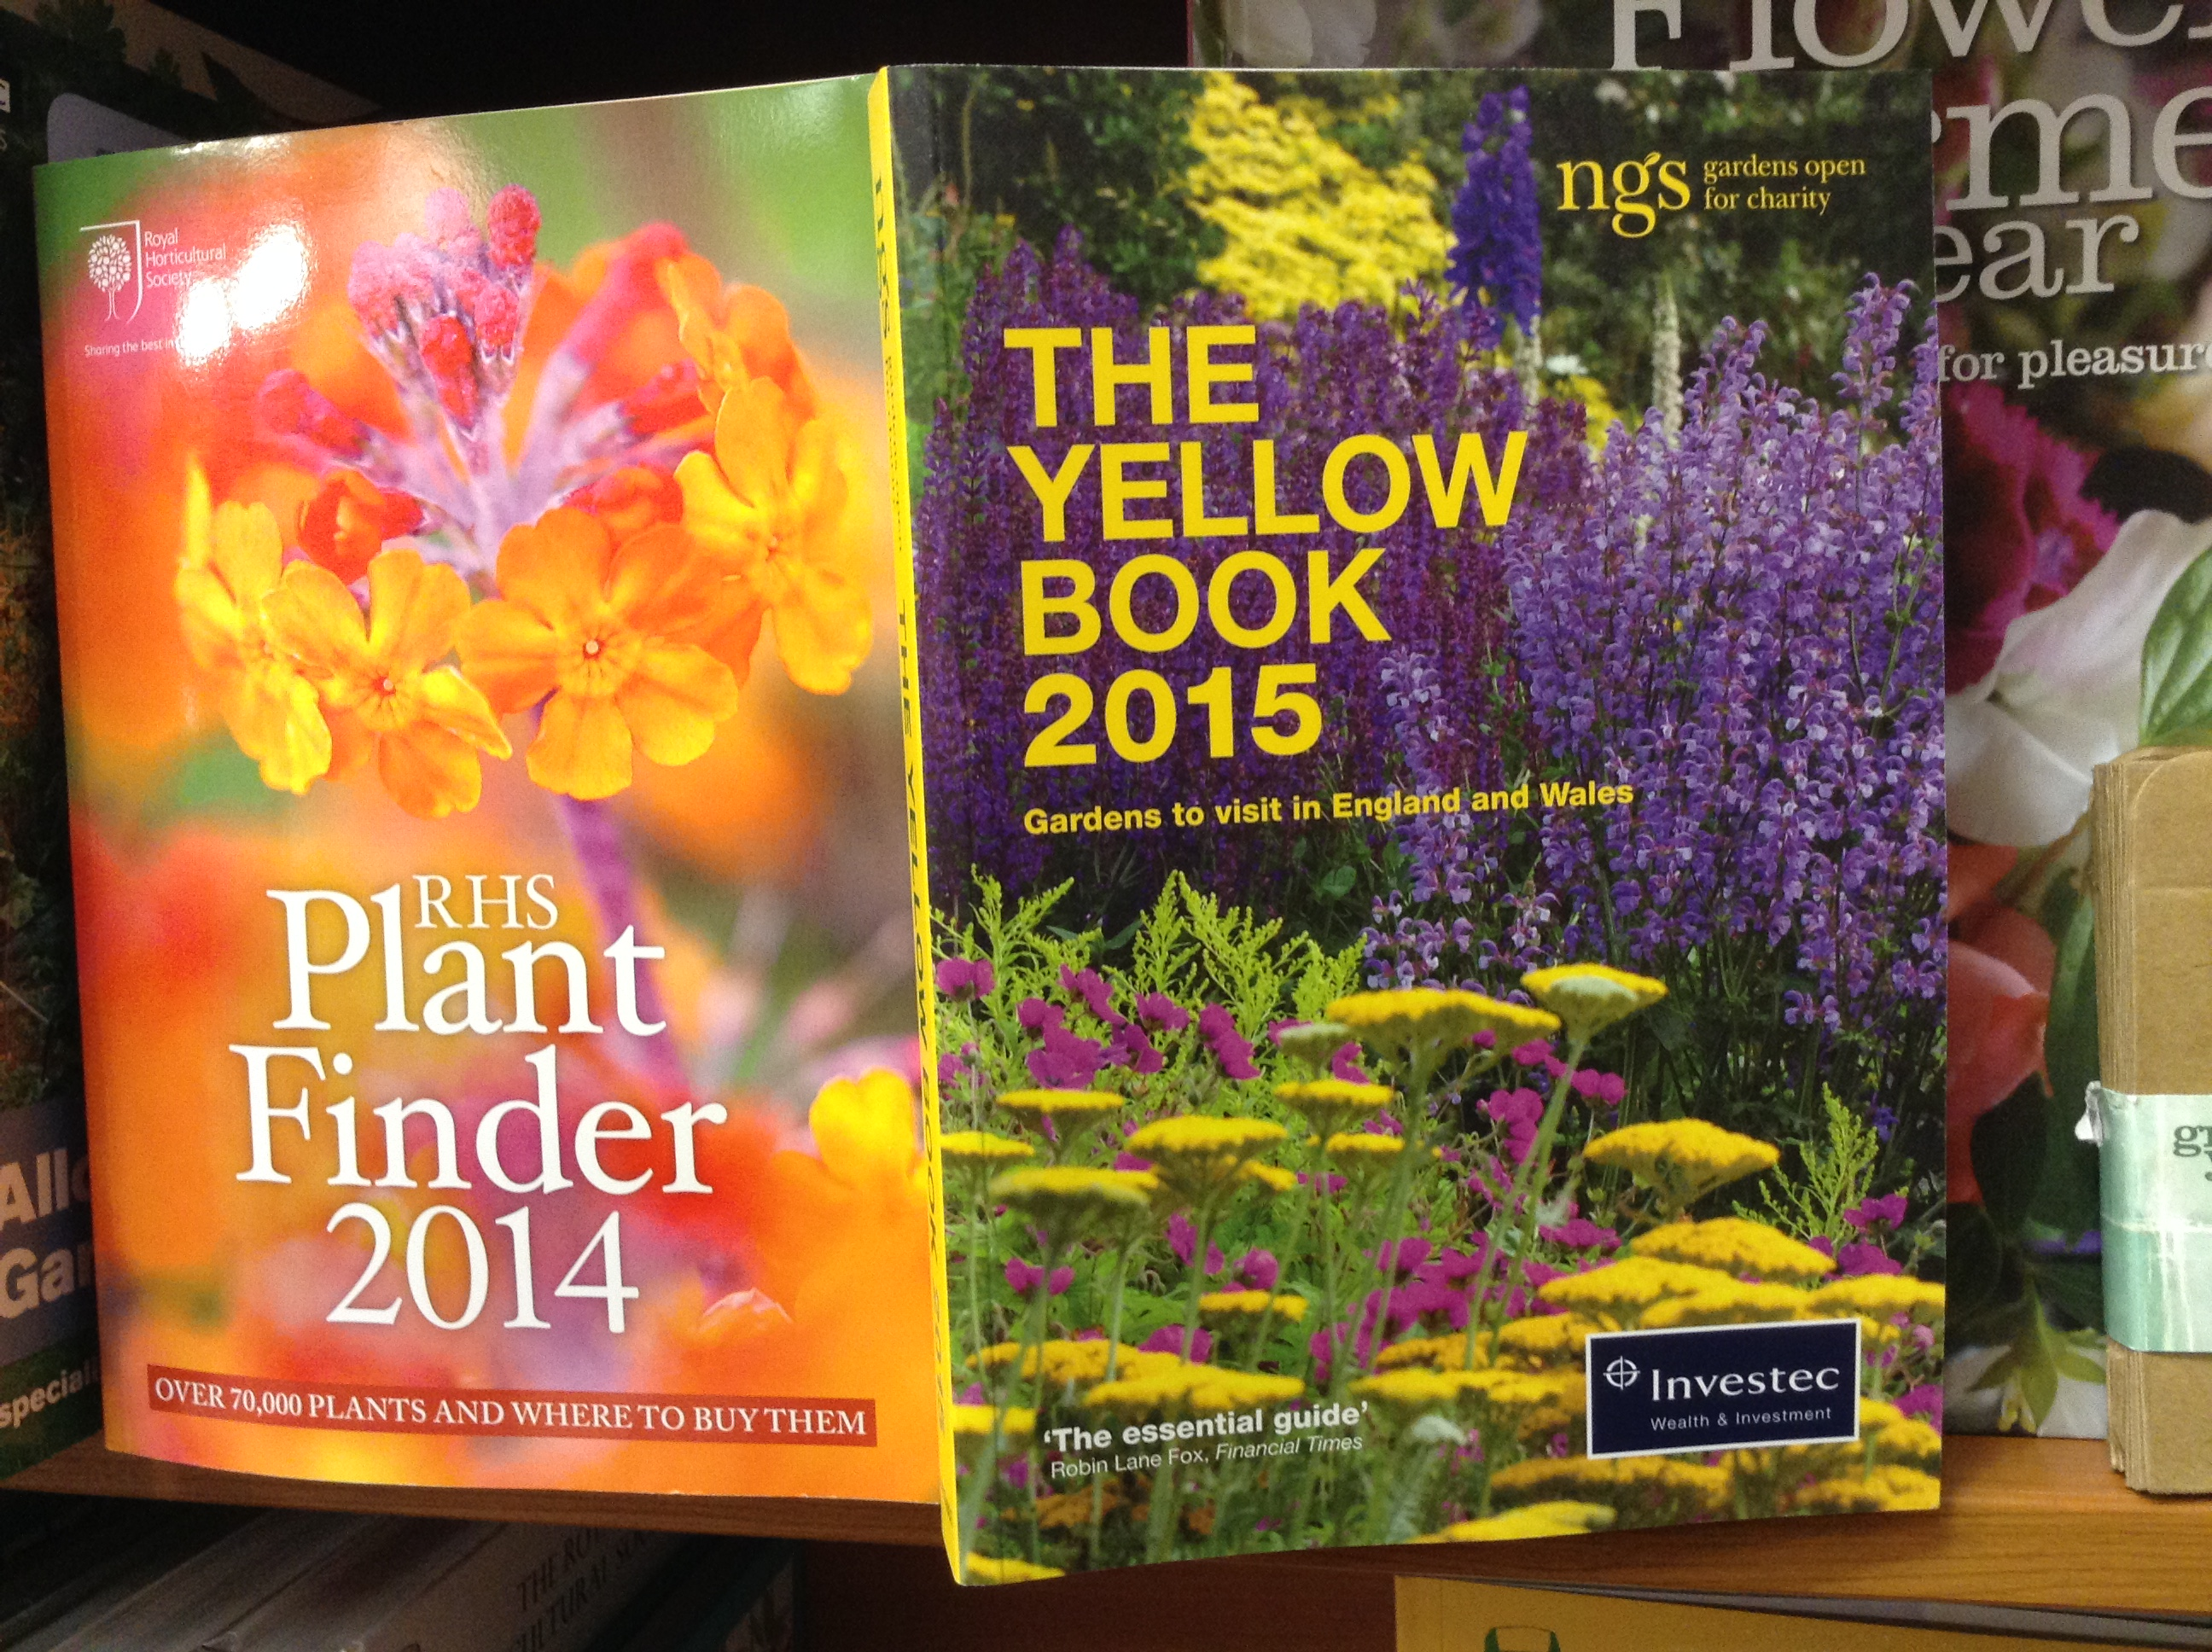 Finding places to visit - the Yellow Book and the Plant Finder